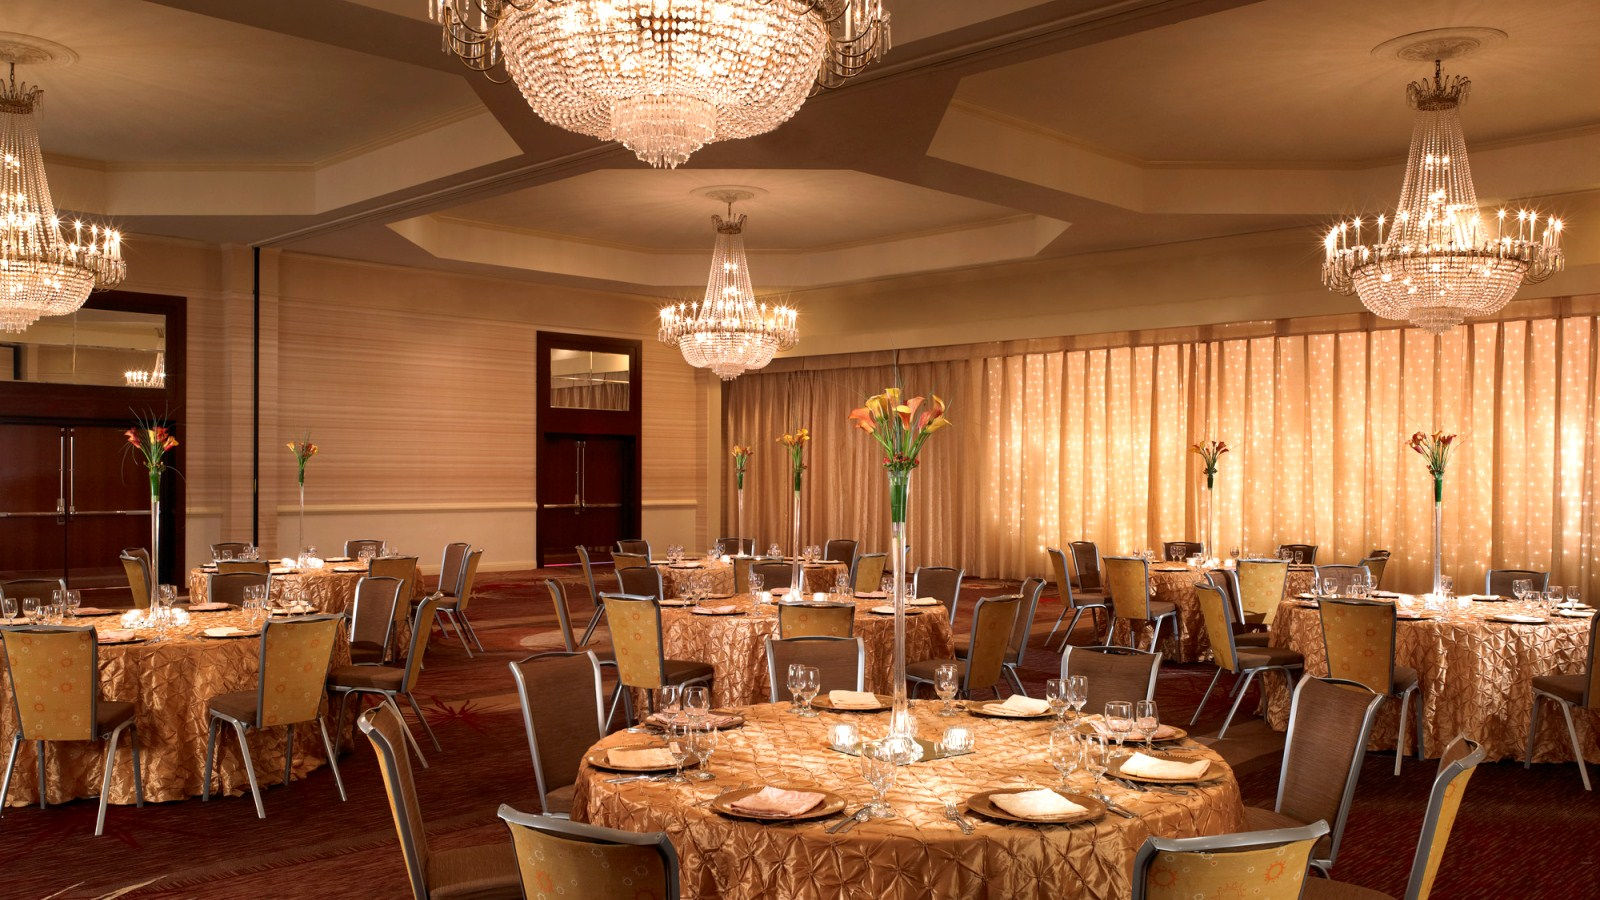 Albuquerque Wedding Venues - Ballroom